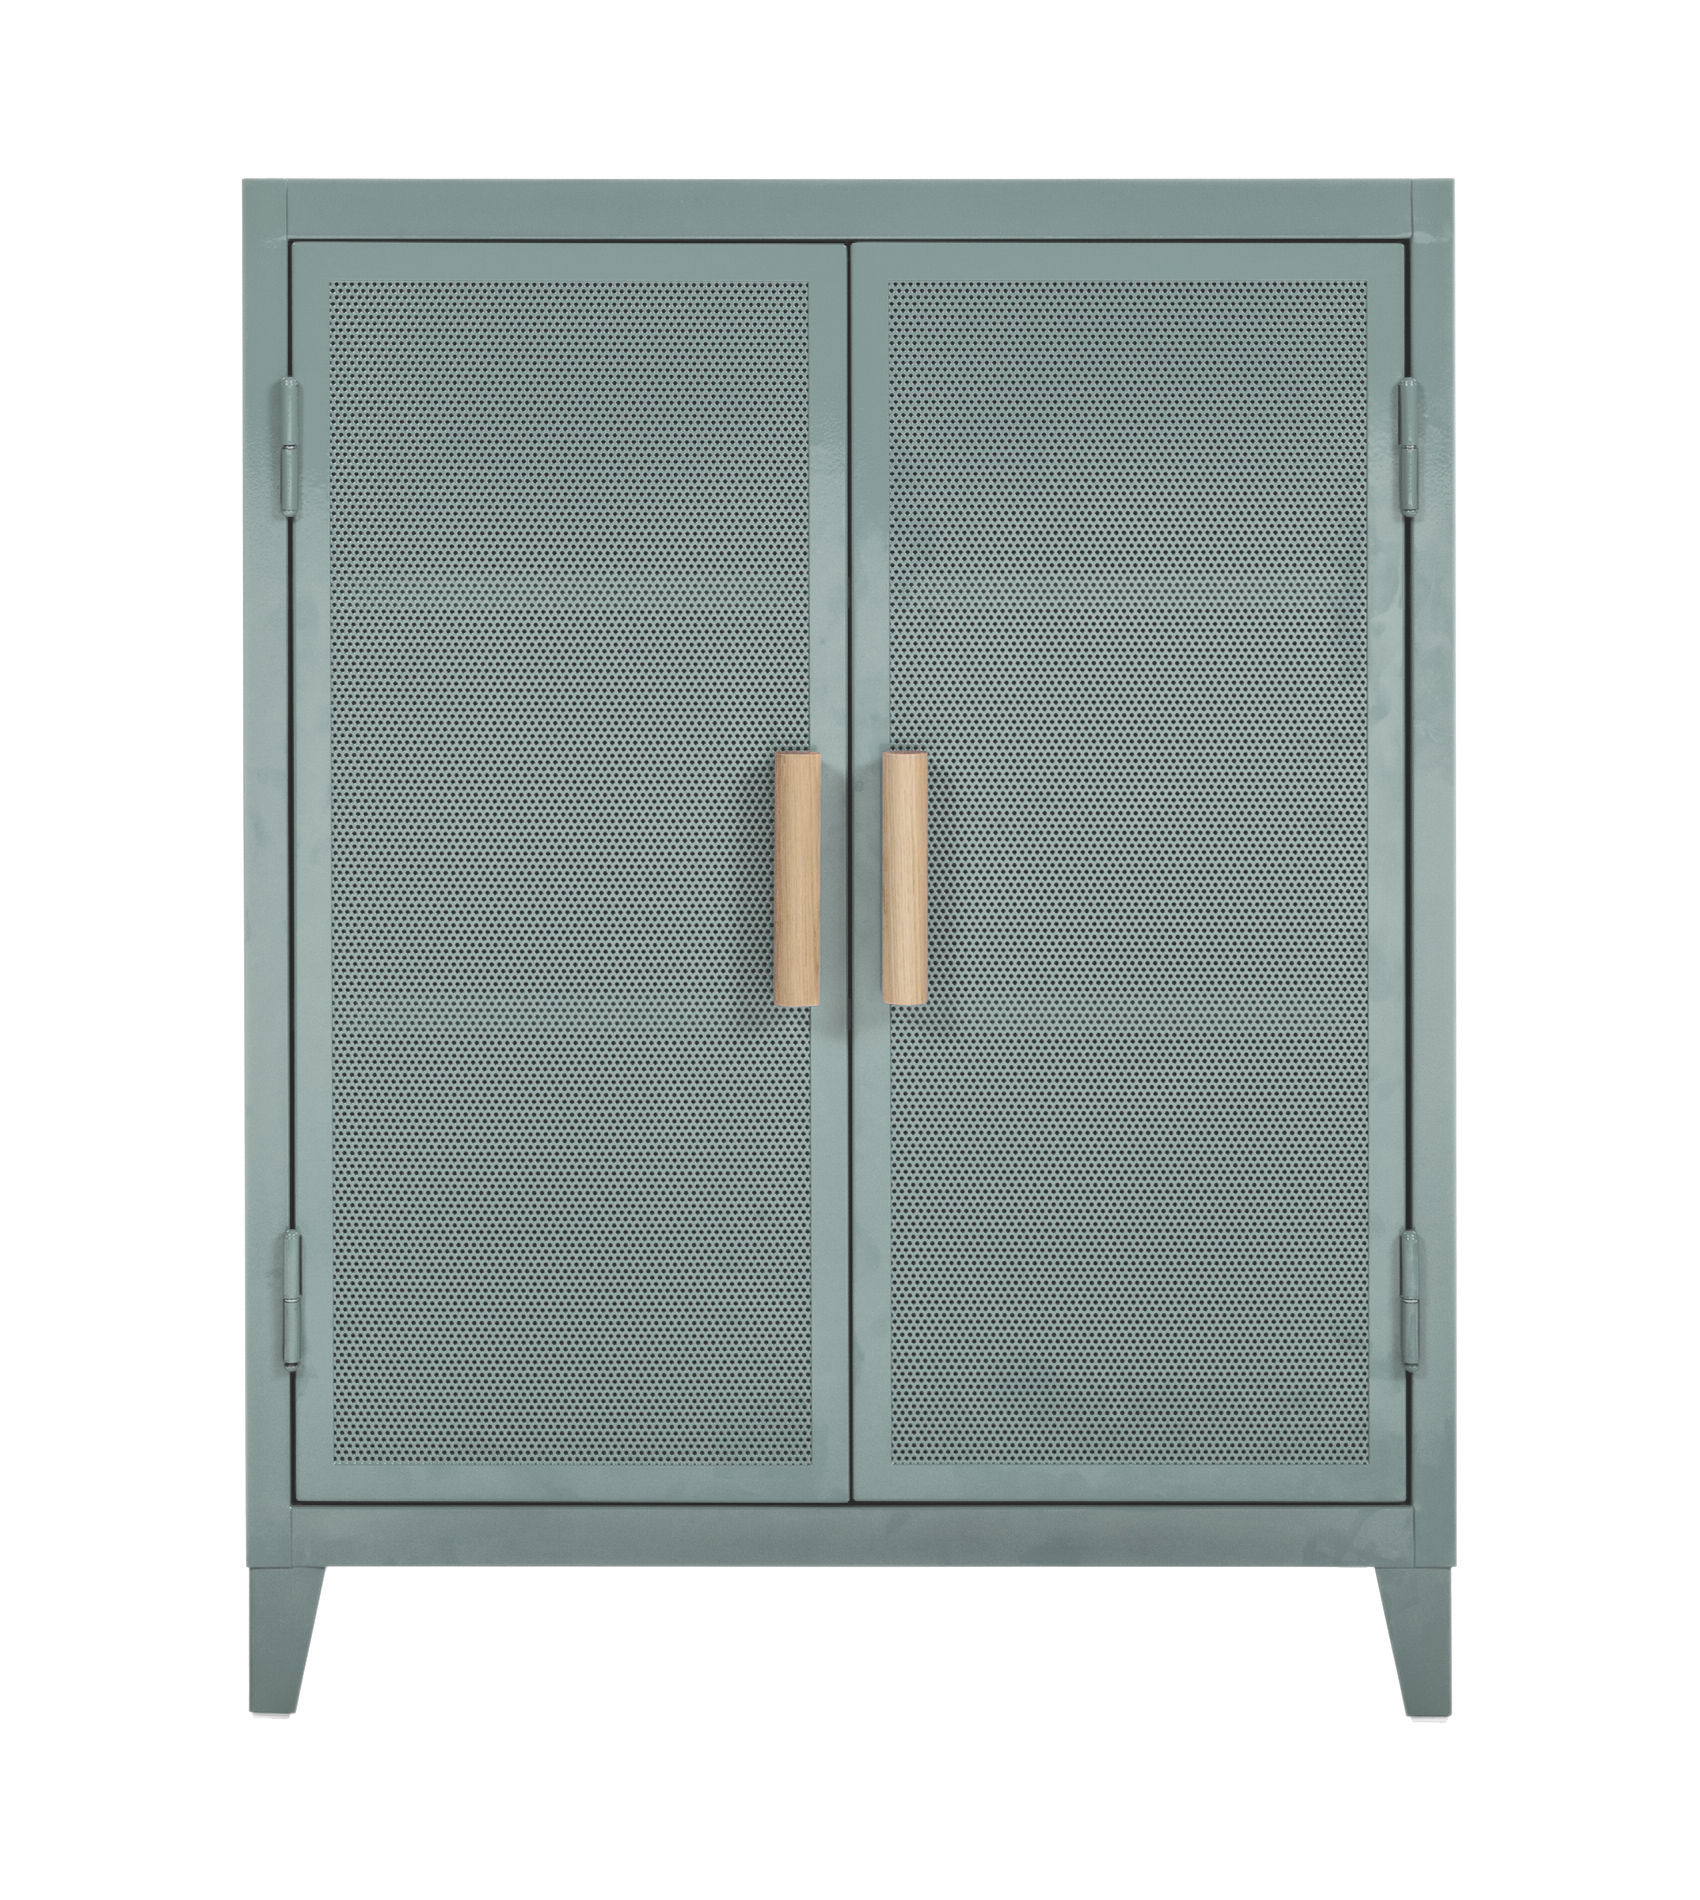 Furniture - Shelves & Storage Furniture - The low cloakroom - 2 doors / Perforated steel & wood by Tolix - Lichen green / Oak handles - Lacquered recycled steel, Solid oak